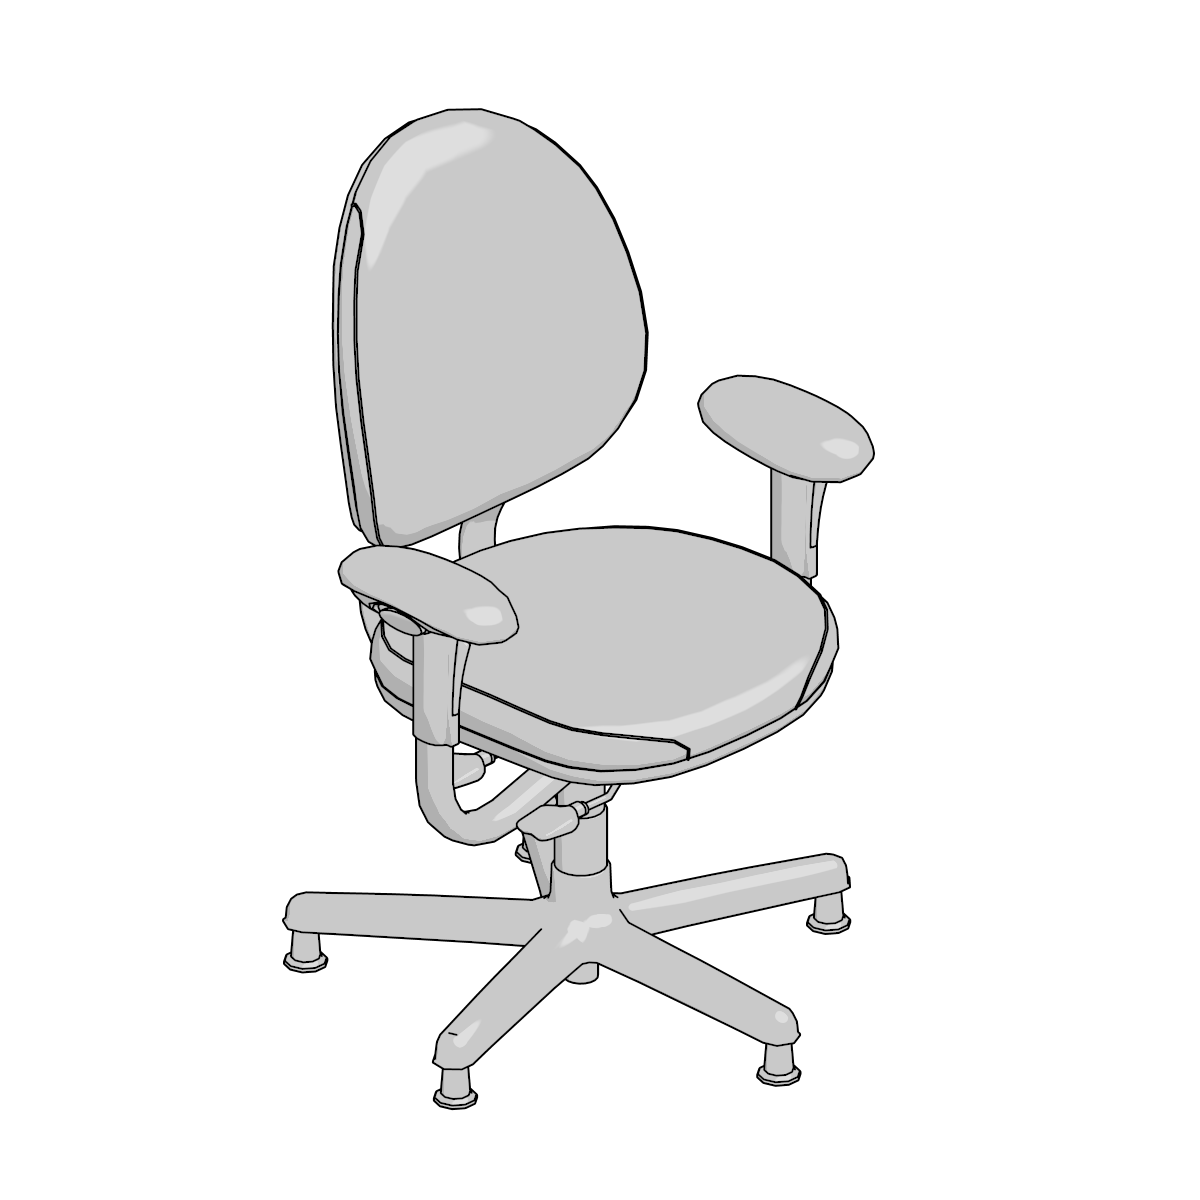 Steelcase Criterion Chair 3d Models Archive Steelcase